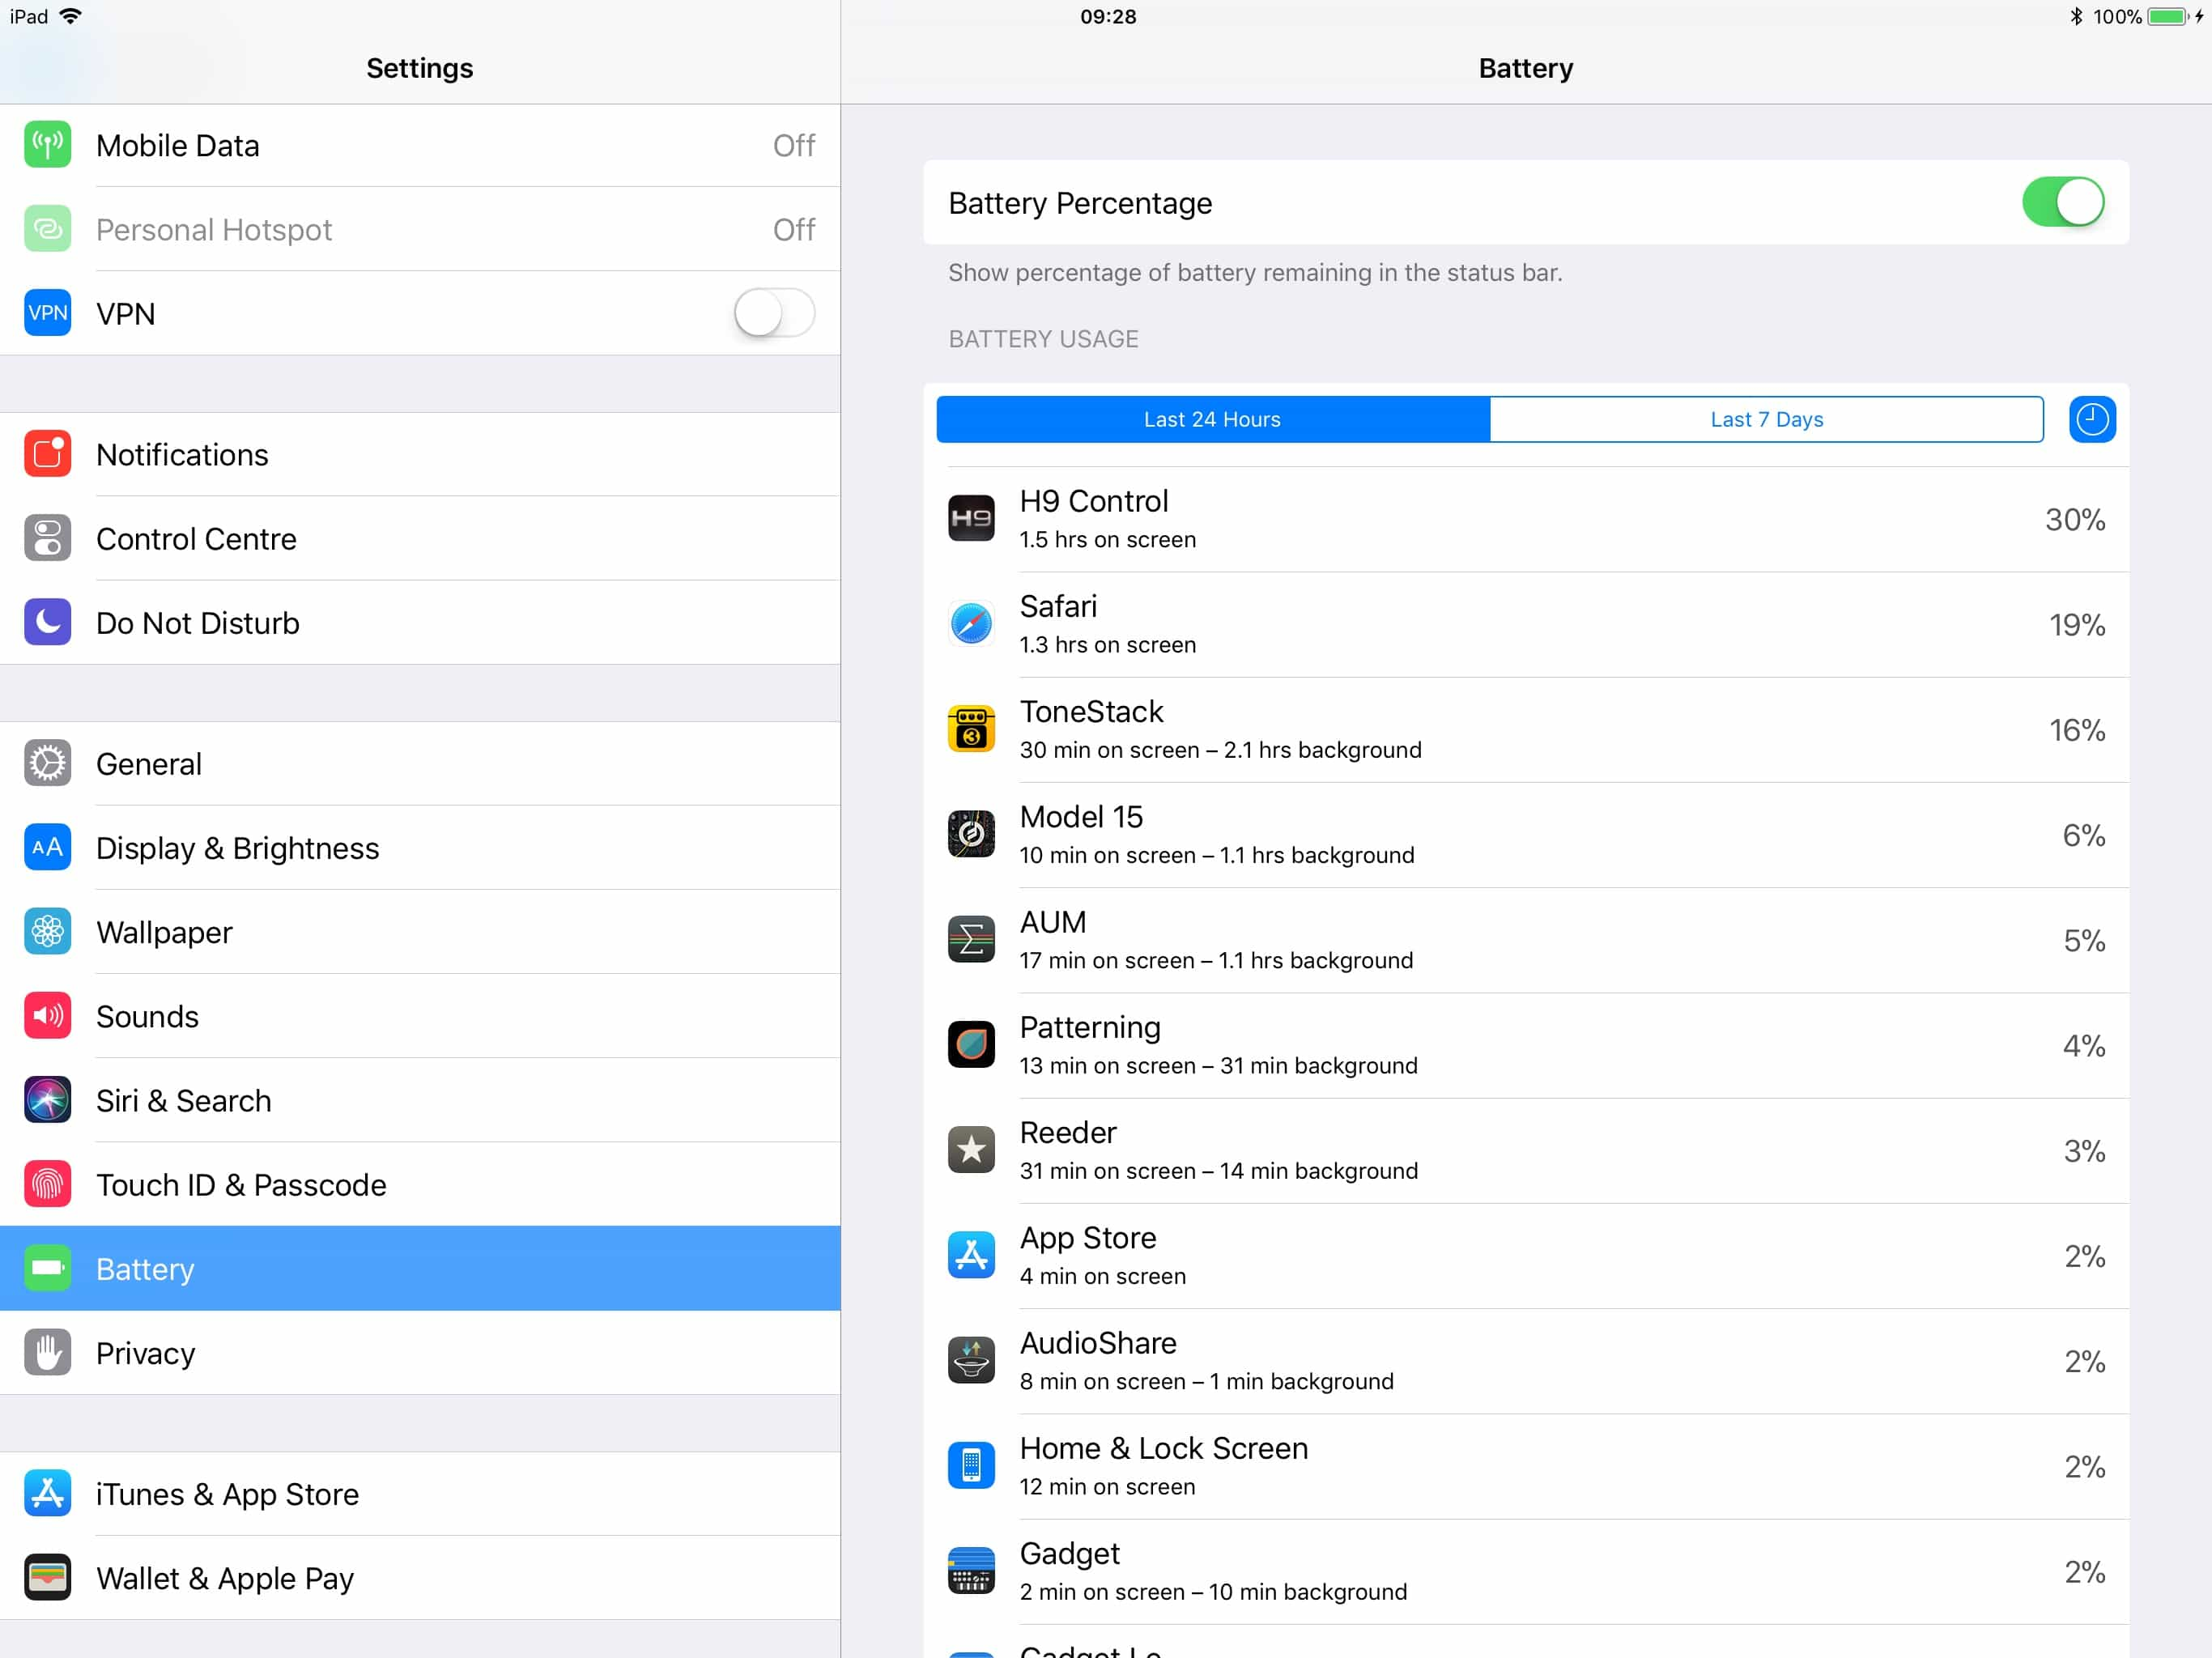 This is the iOS 11 battery settings